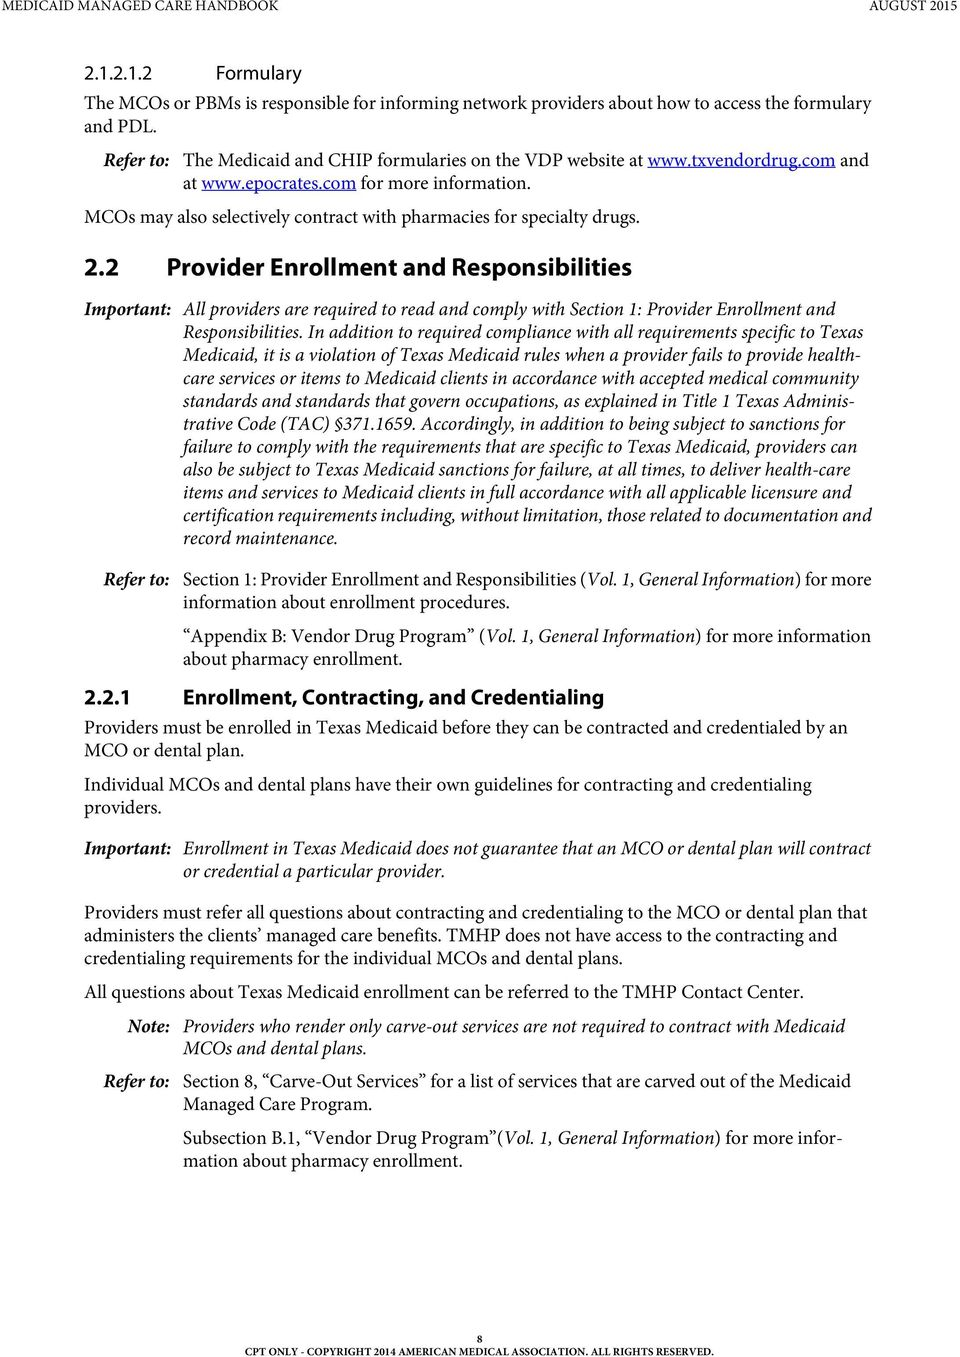 2 Provider Enrollment and Responsibilities Important: All providers are  required to read and comply with